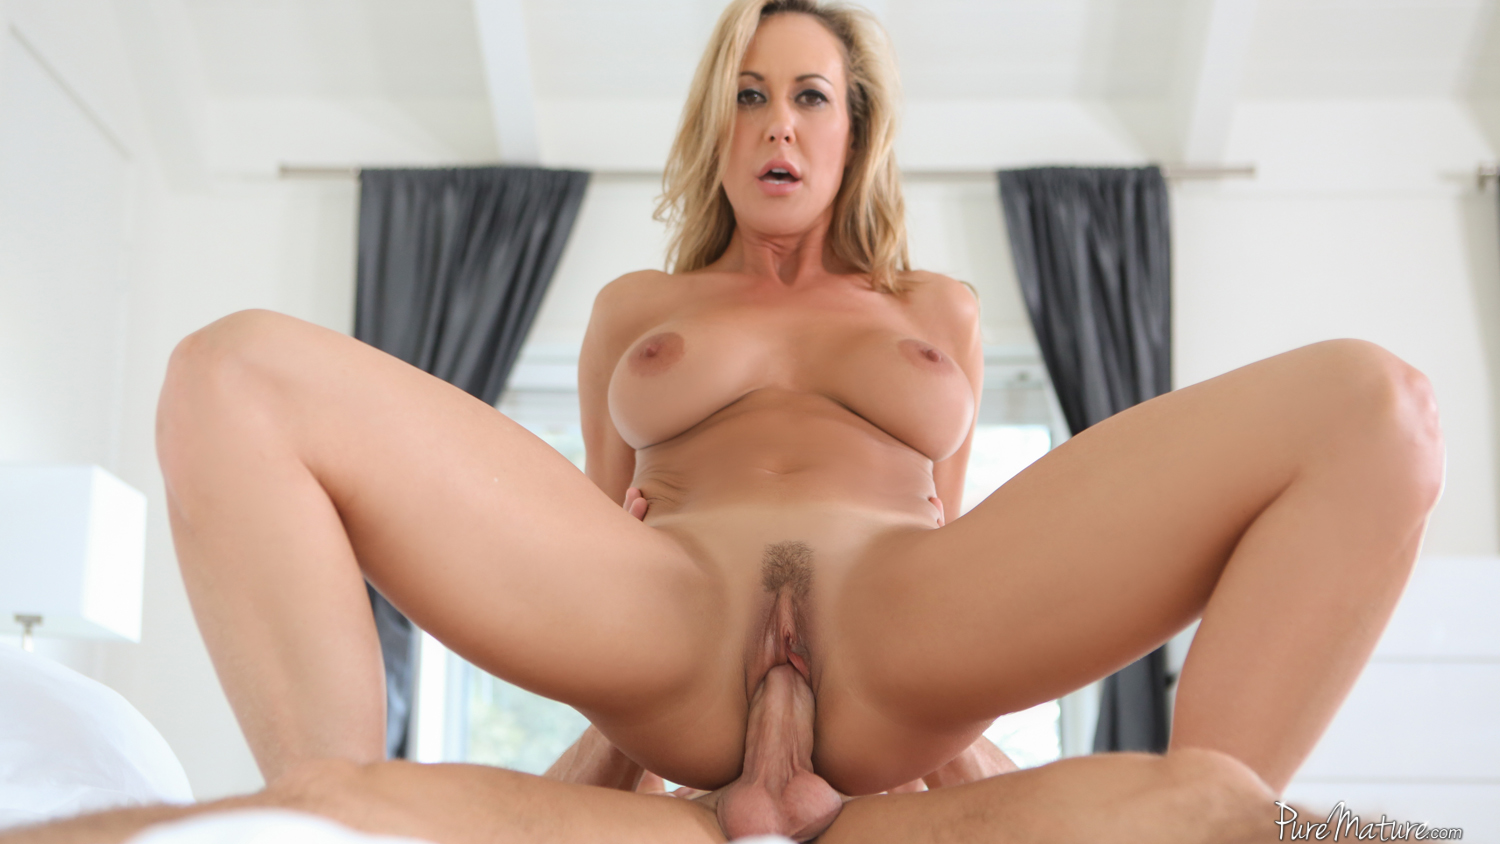 02 - Pure Mature Tube Videos And Pictures-8362